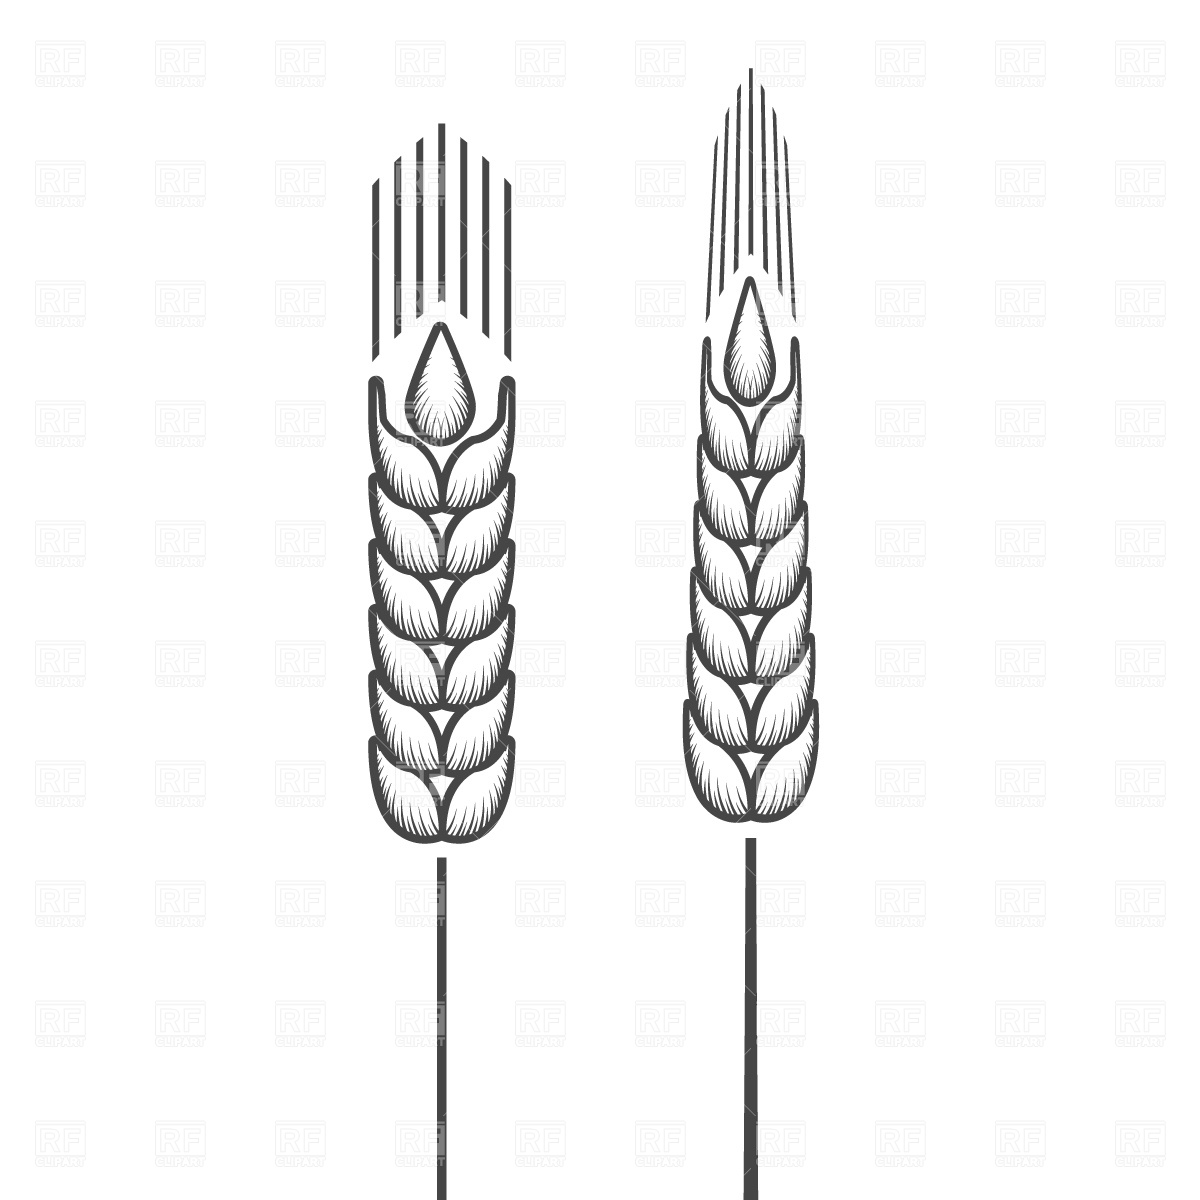 1200x1200 Stylized Ear Of Wheat Vector Image Vector Artwork Of Plants And